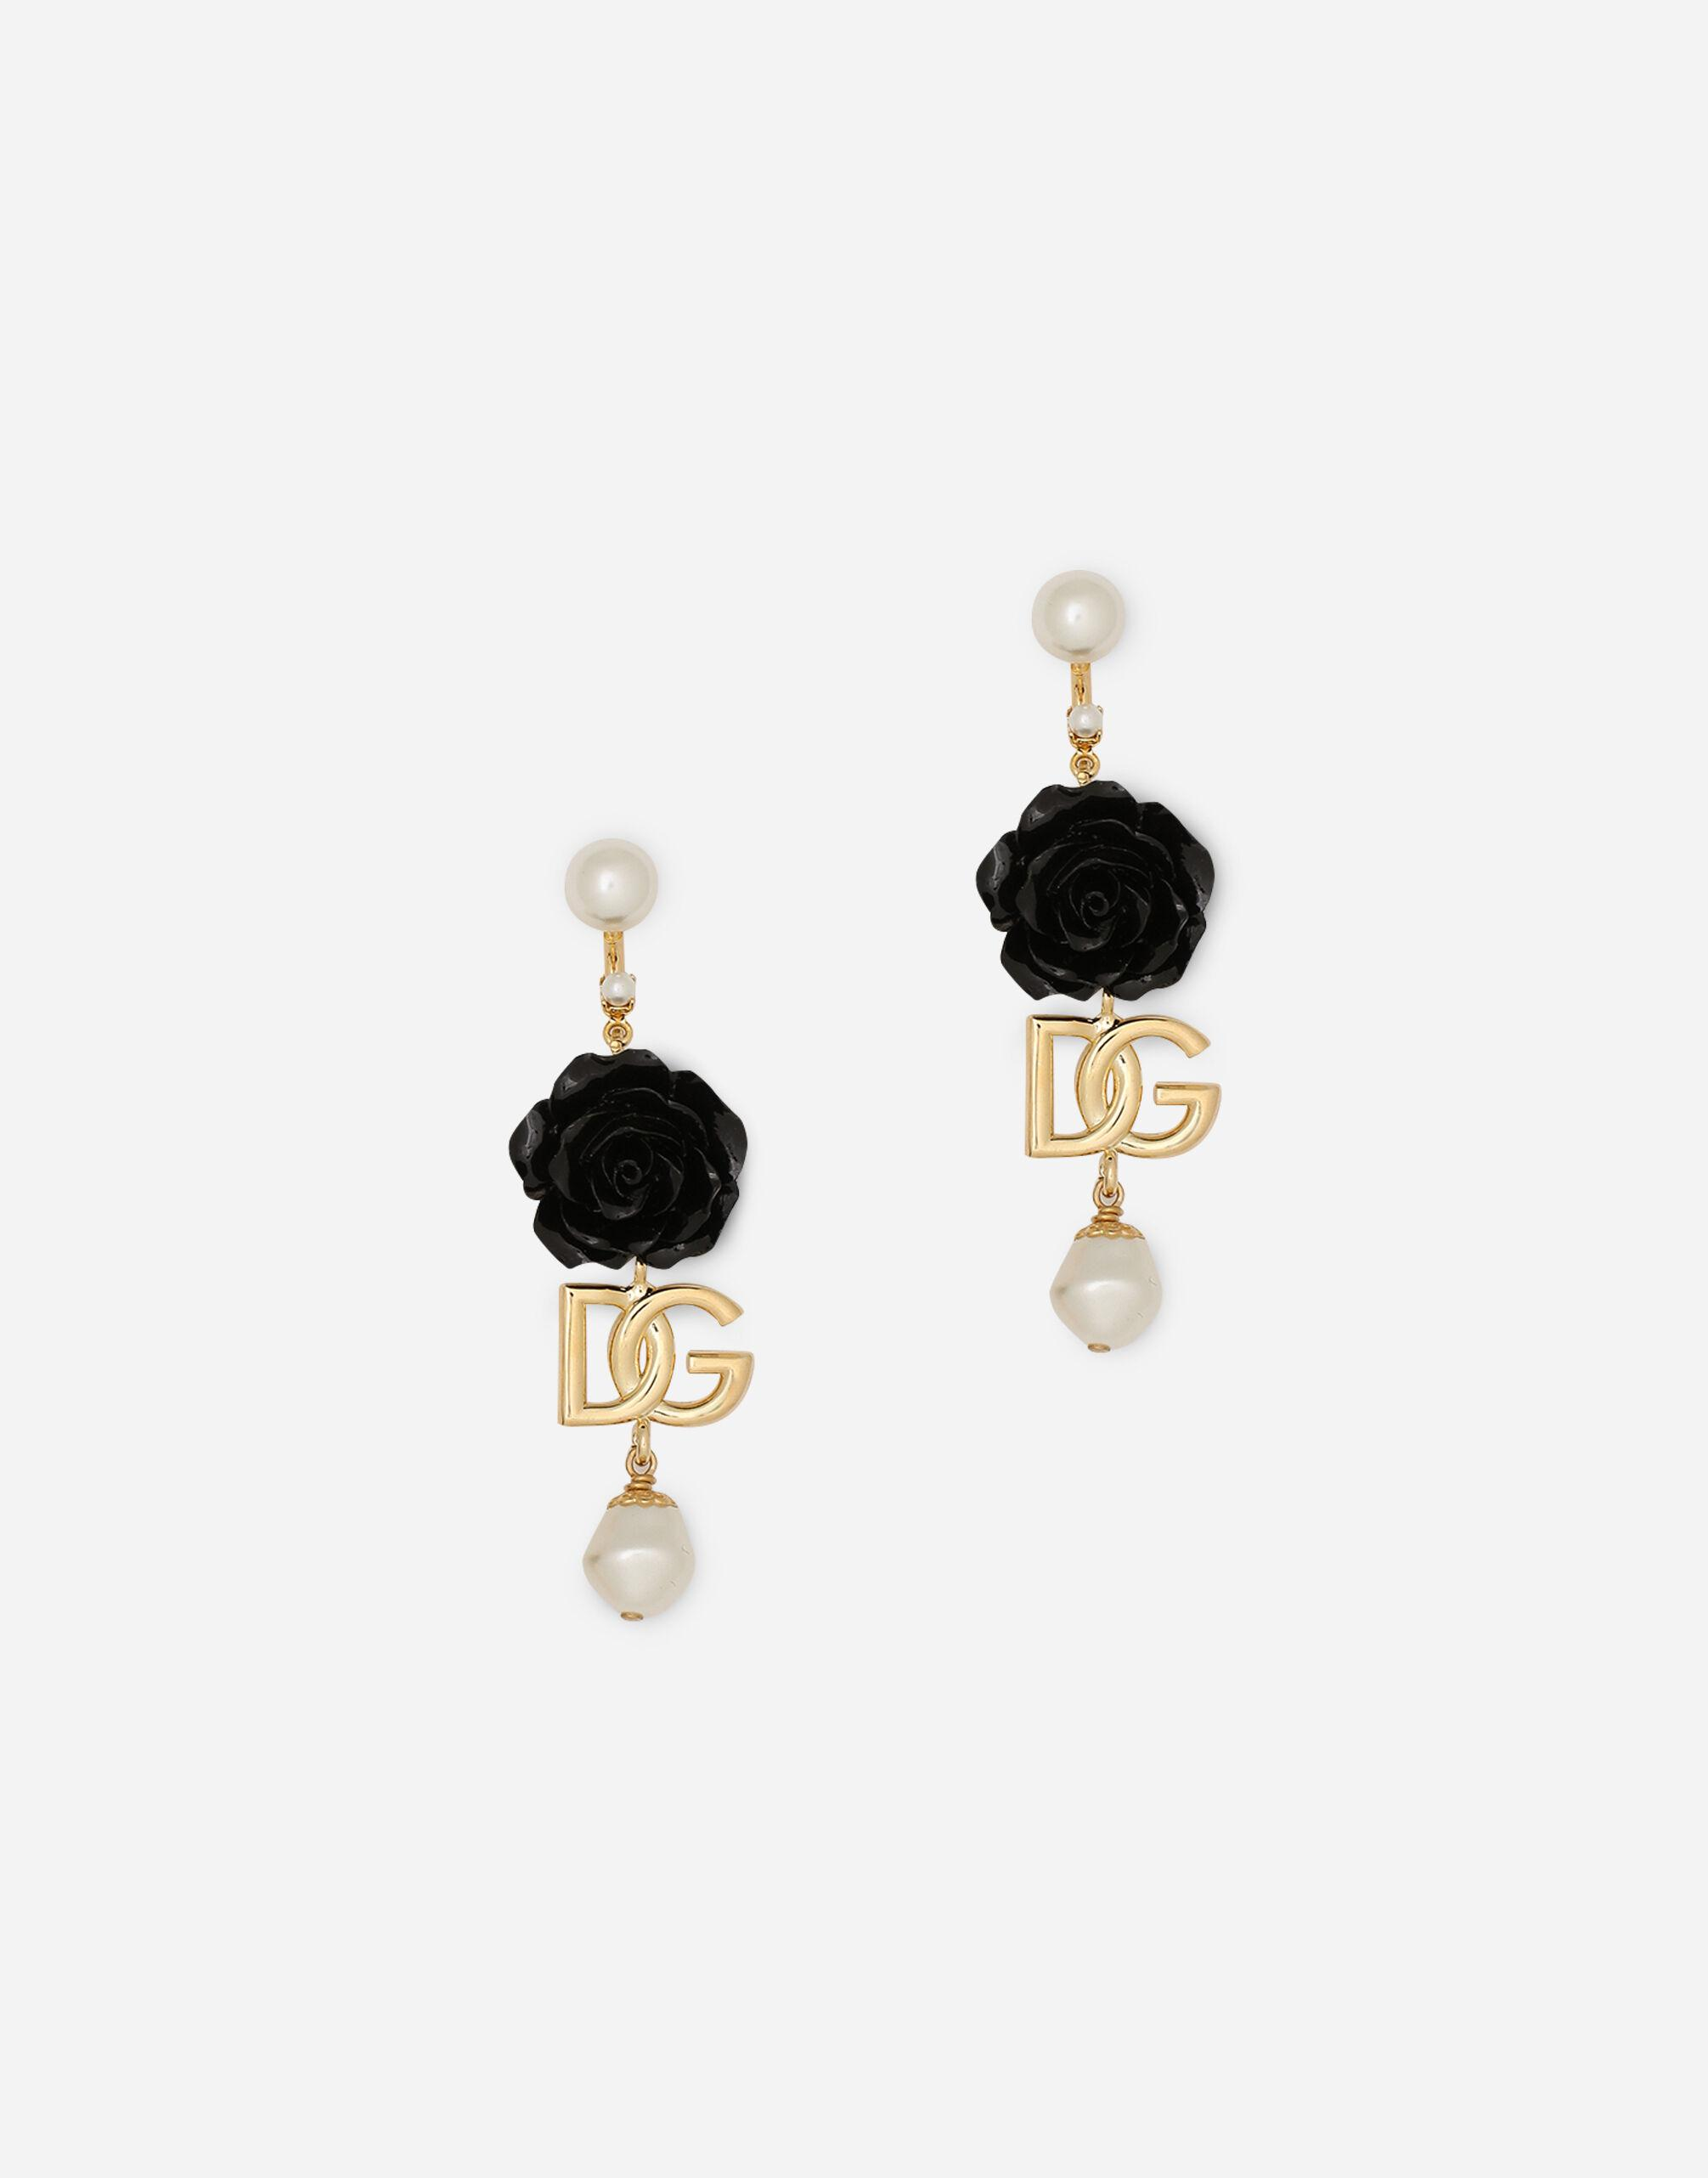 Drop earrings with roses and DG logo